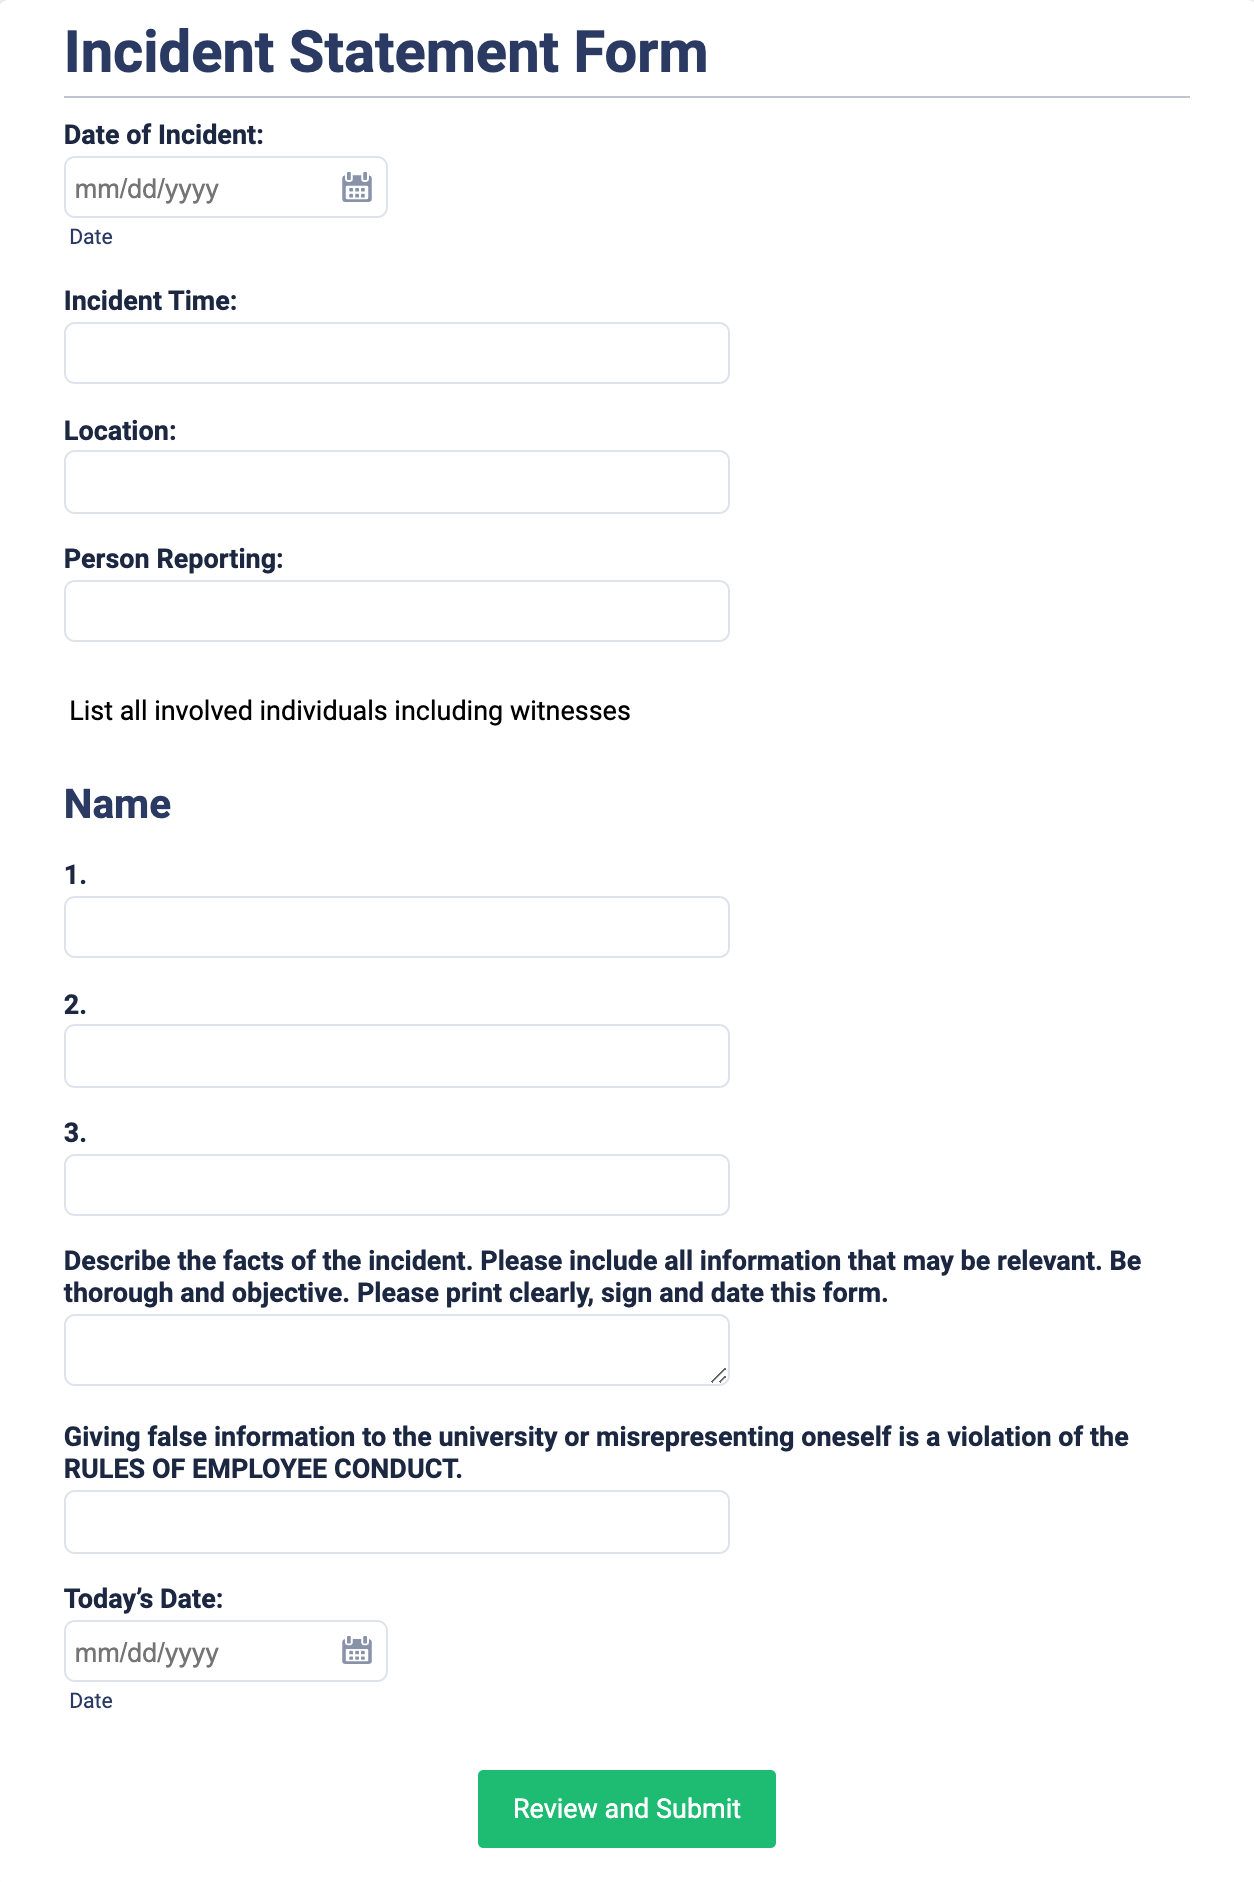 Incident Statement Form Template